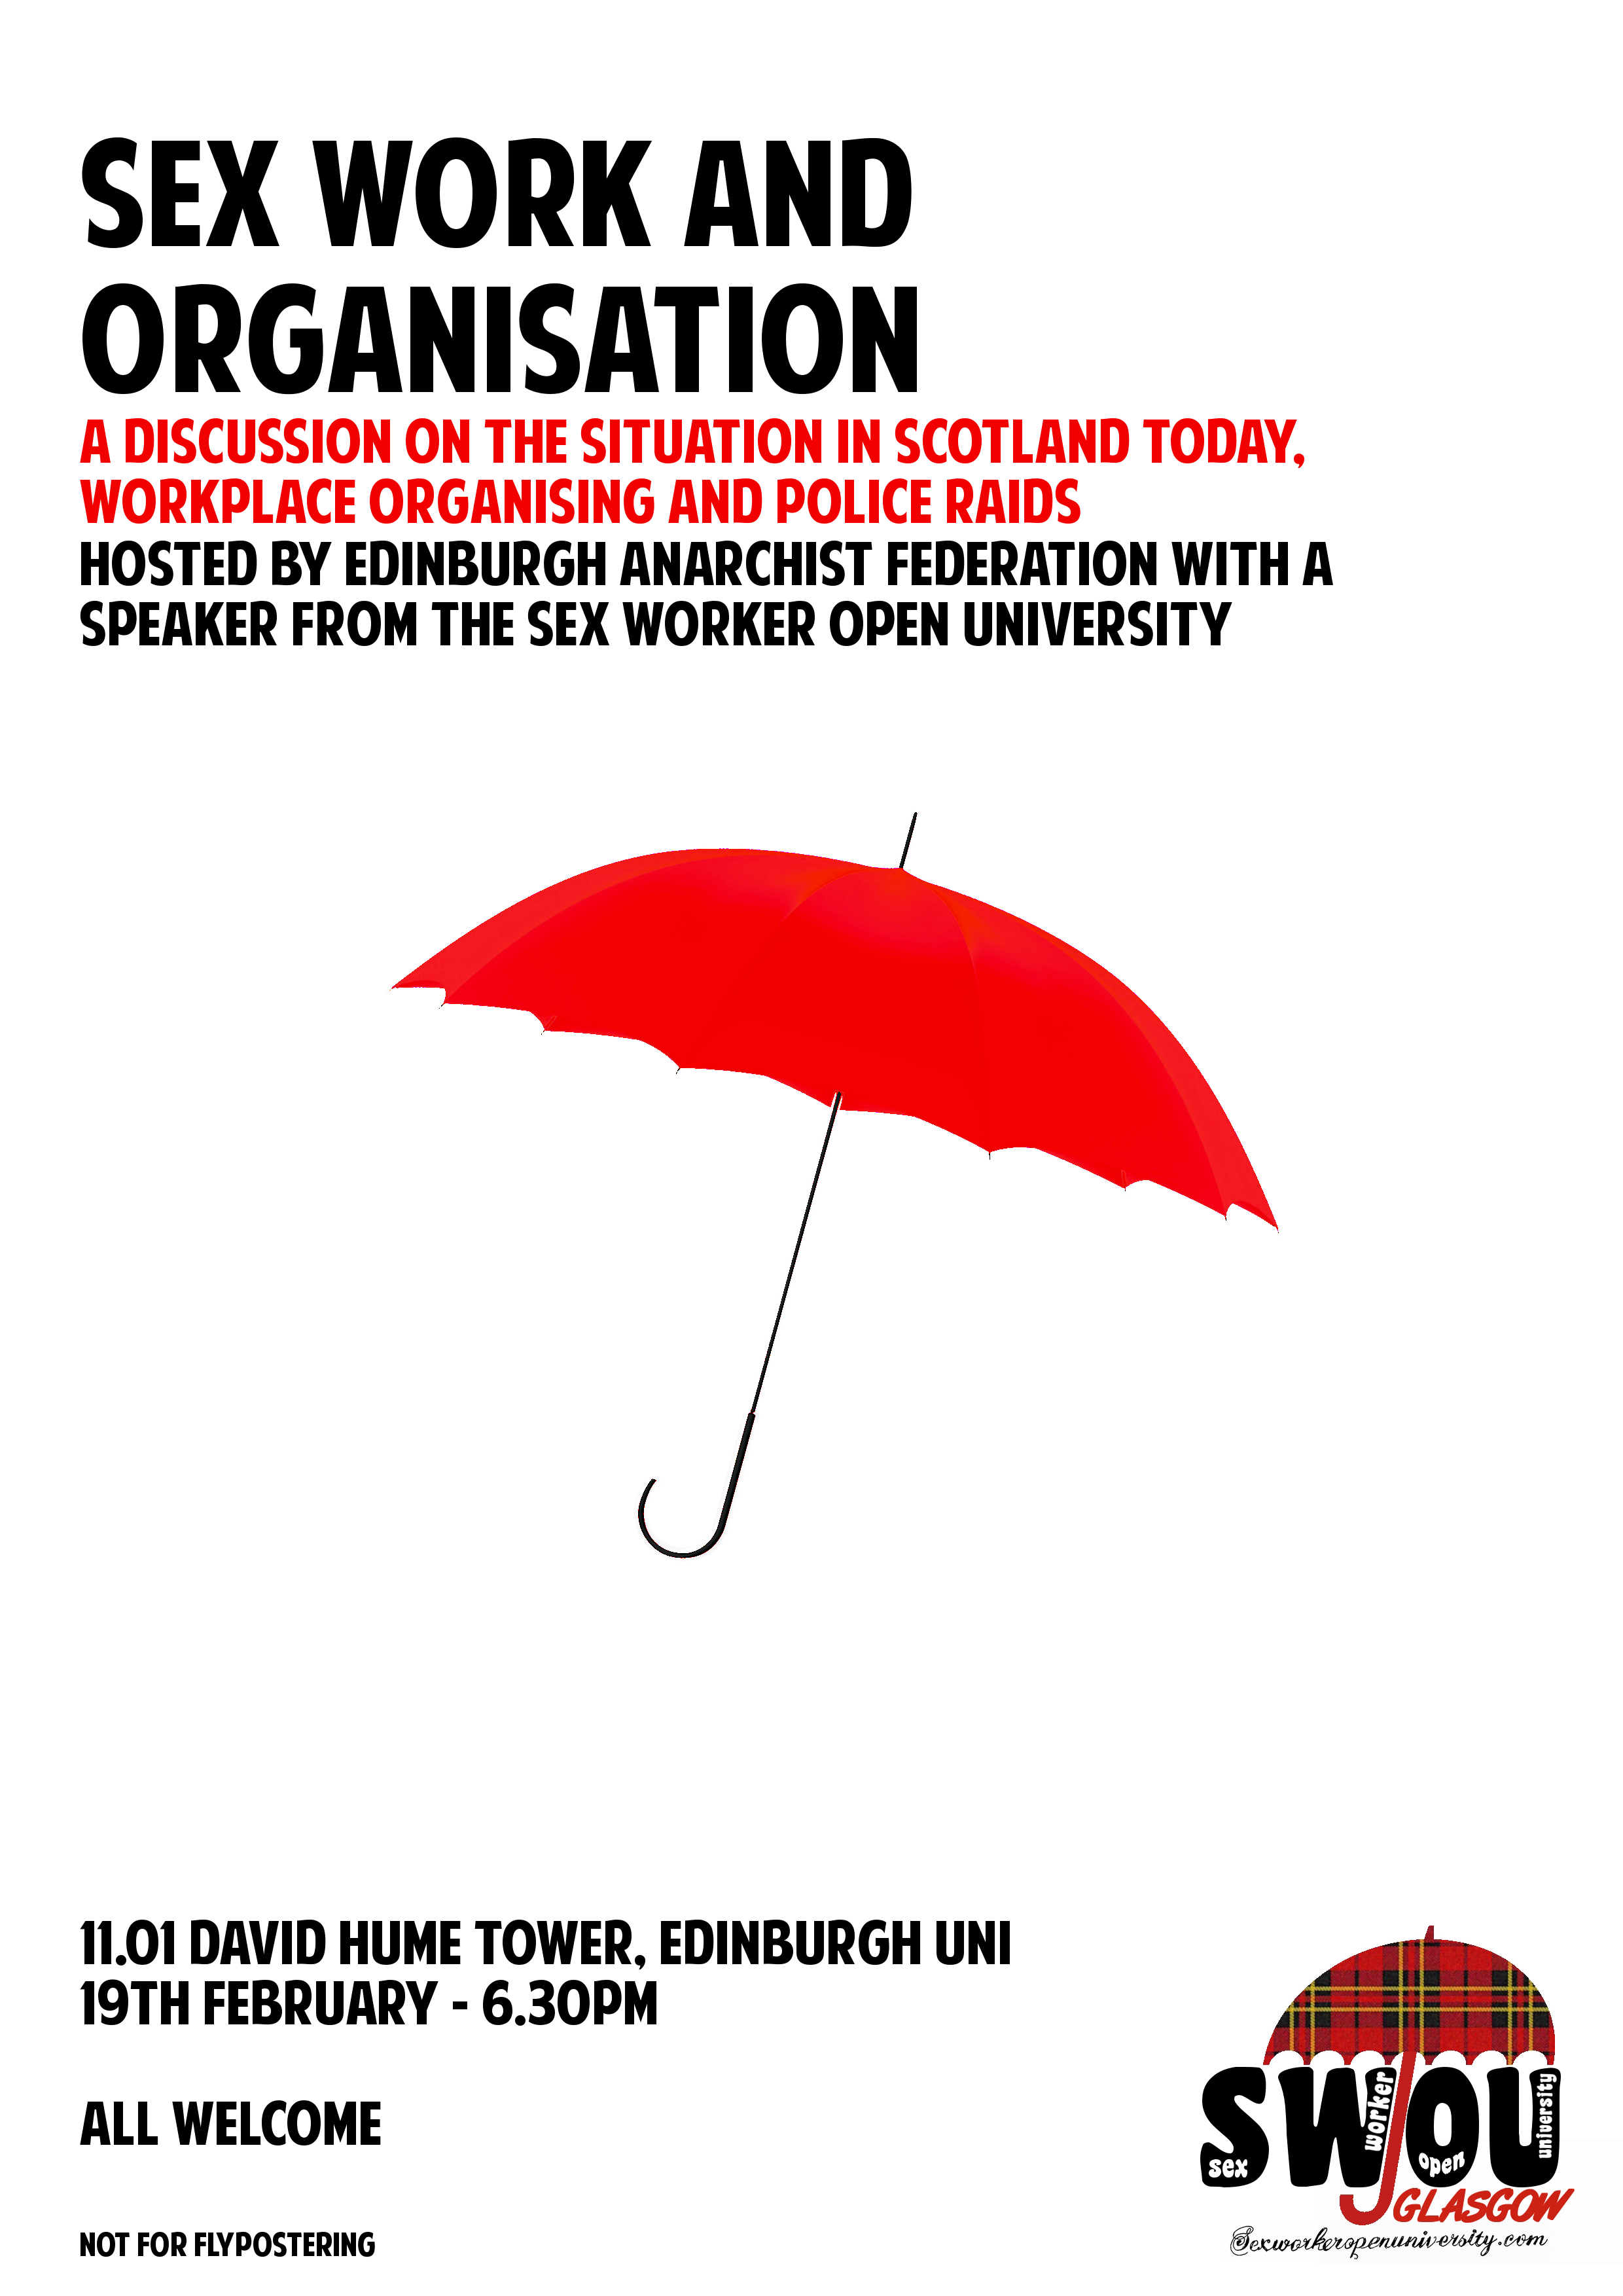 Event Poster - Location: 11.01 David Hume Tower. Time: 18:30 Wednesday 19th Feb